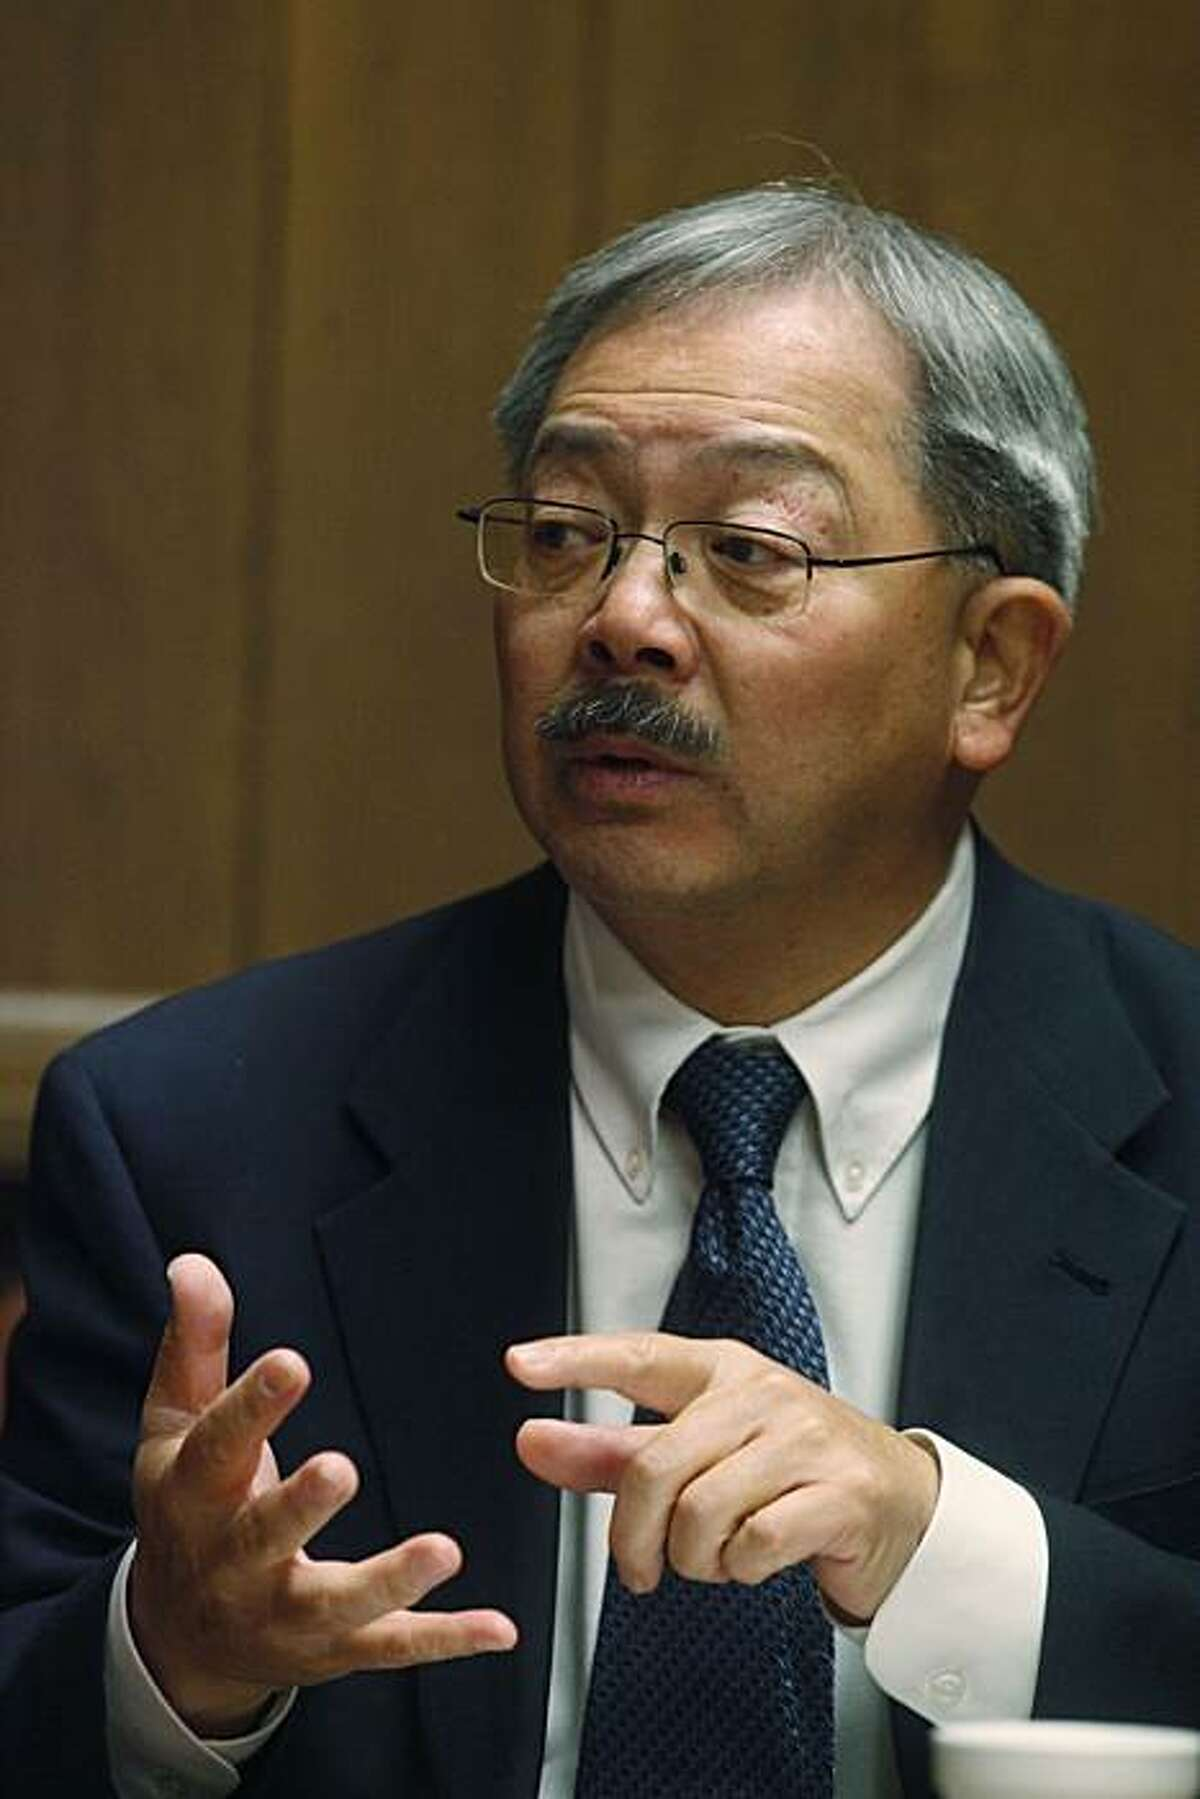 San Francisco Mayor Ed Lee, meets with the San Francisco Chronicle editorial board on Tuesday January. 25, 2011 in San Francisco, Calif.